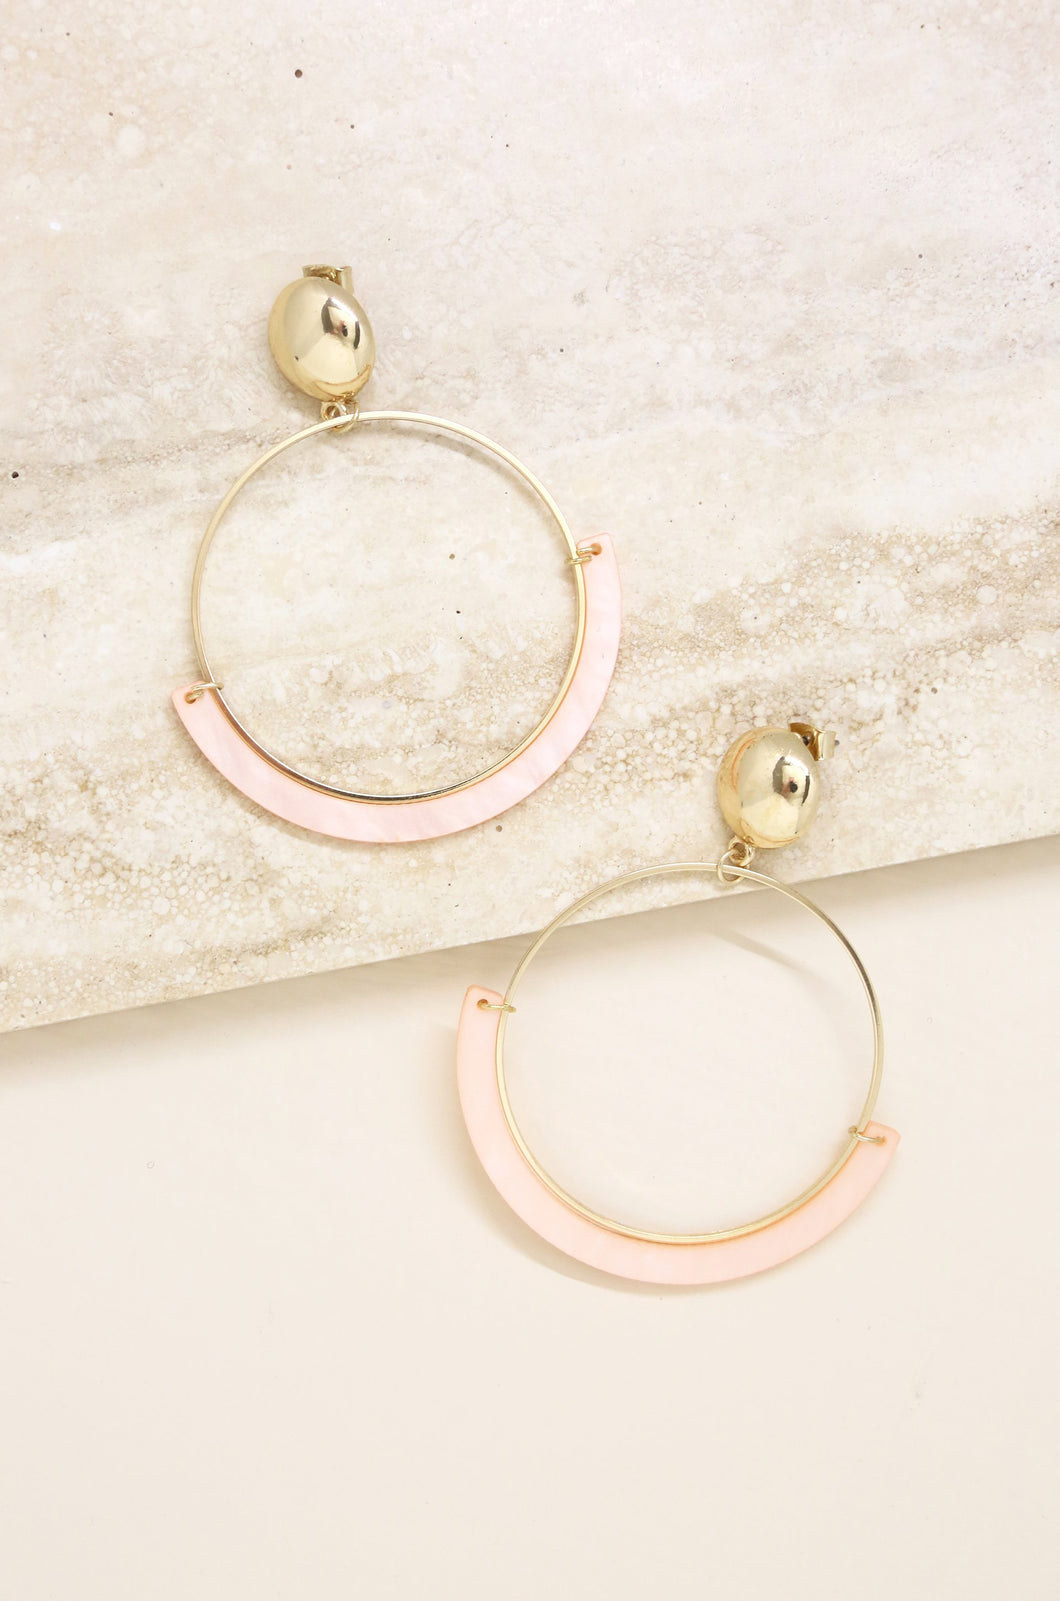 Starring Role Earring in Light Pink and Gold